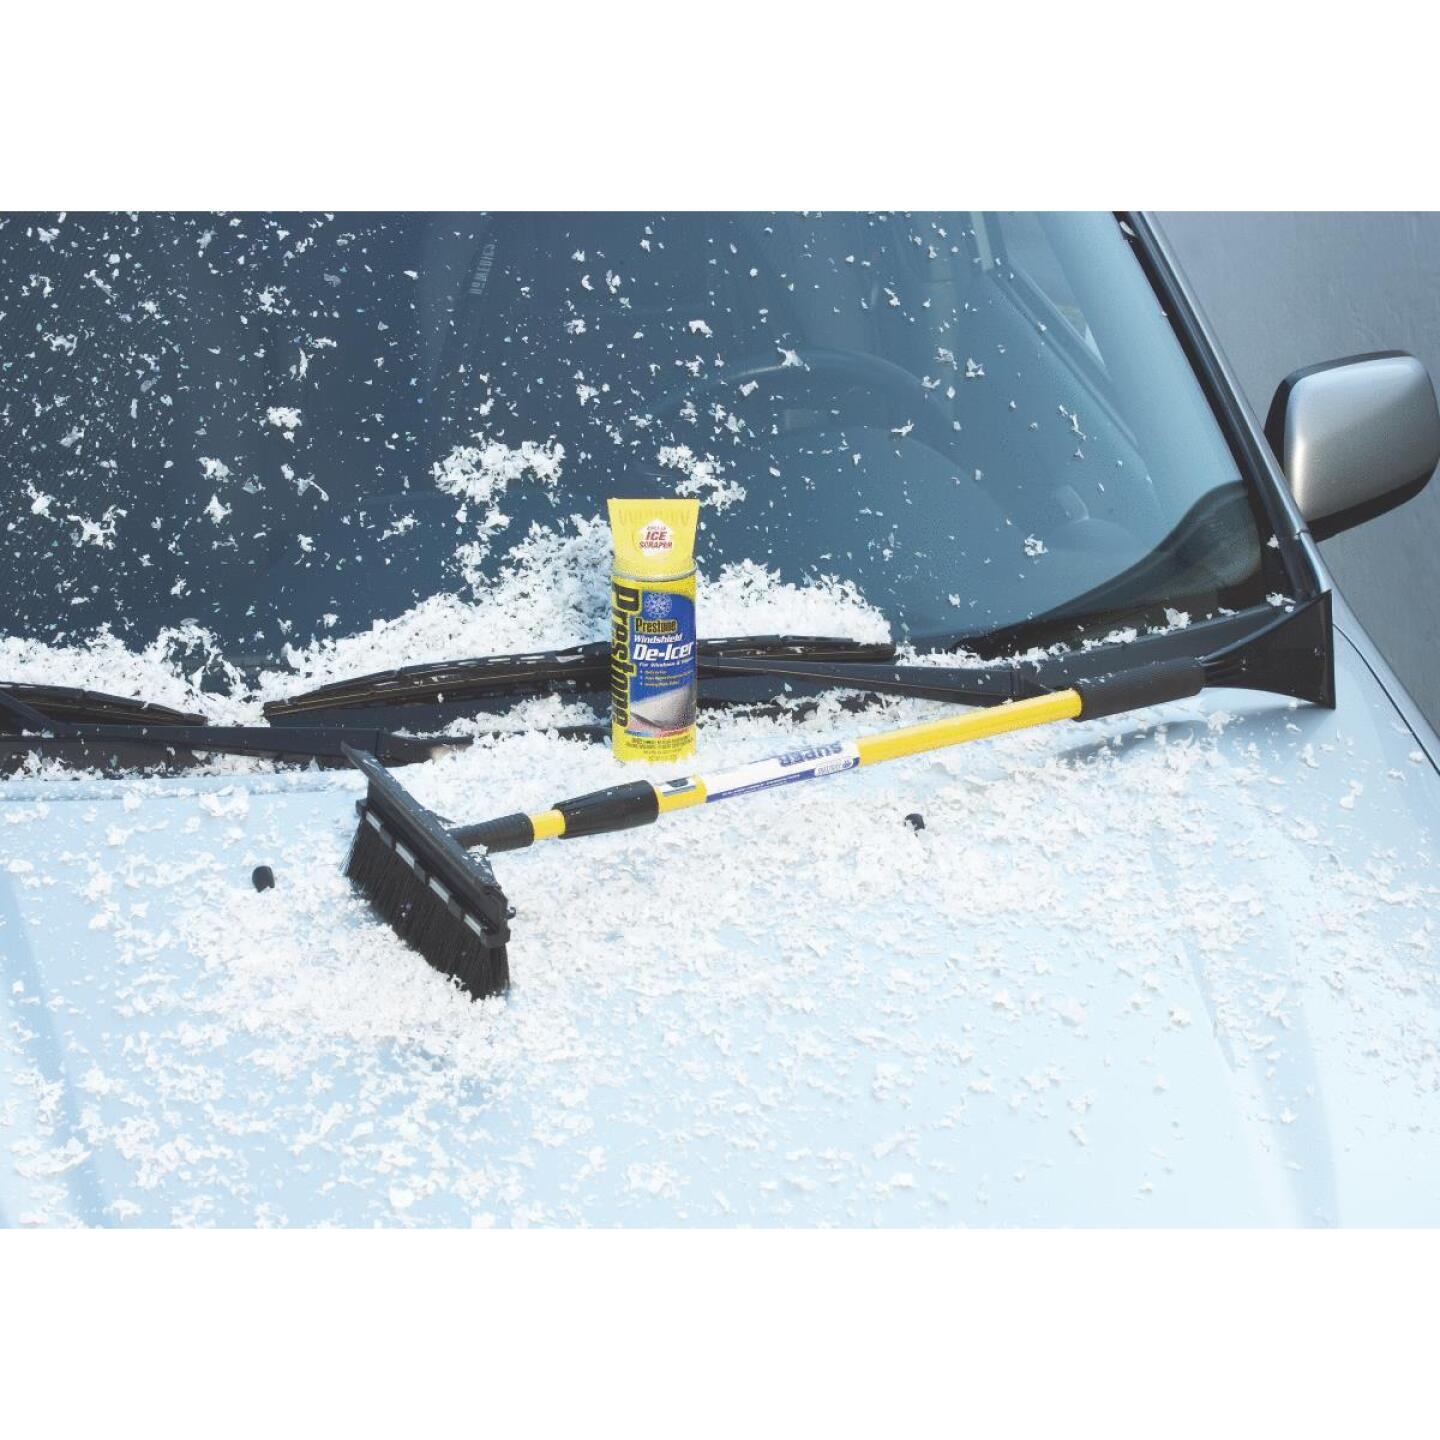 Michelin 48 In. Steel Extender Snowbrush with Ice Scraper Image 4